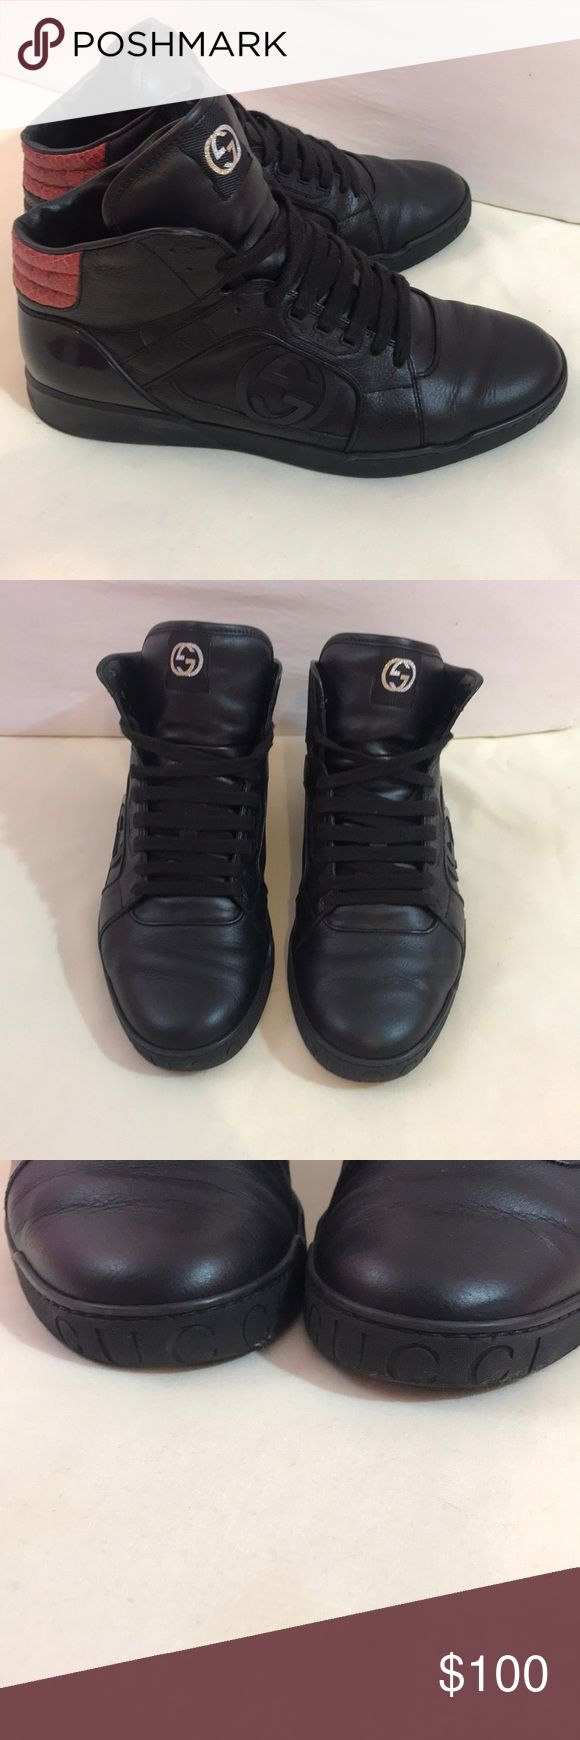 🔥 GUCCI HIGH TOPS 🔥 Men's Authentic Gucci high top sneakers, comes with box, Size 9 Italian  Logos on tongue top, side and front of toe  Python detail on back, along with black patent leather  EUC  Laces are in fantastic condition  The wearer takes amazing care of his shoes, these were loved but time to make room for new purchases 😉 Gucci Shoes Sneakers